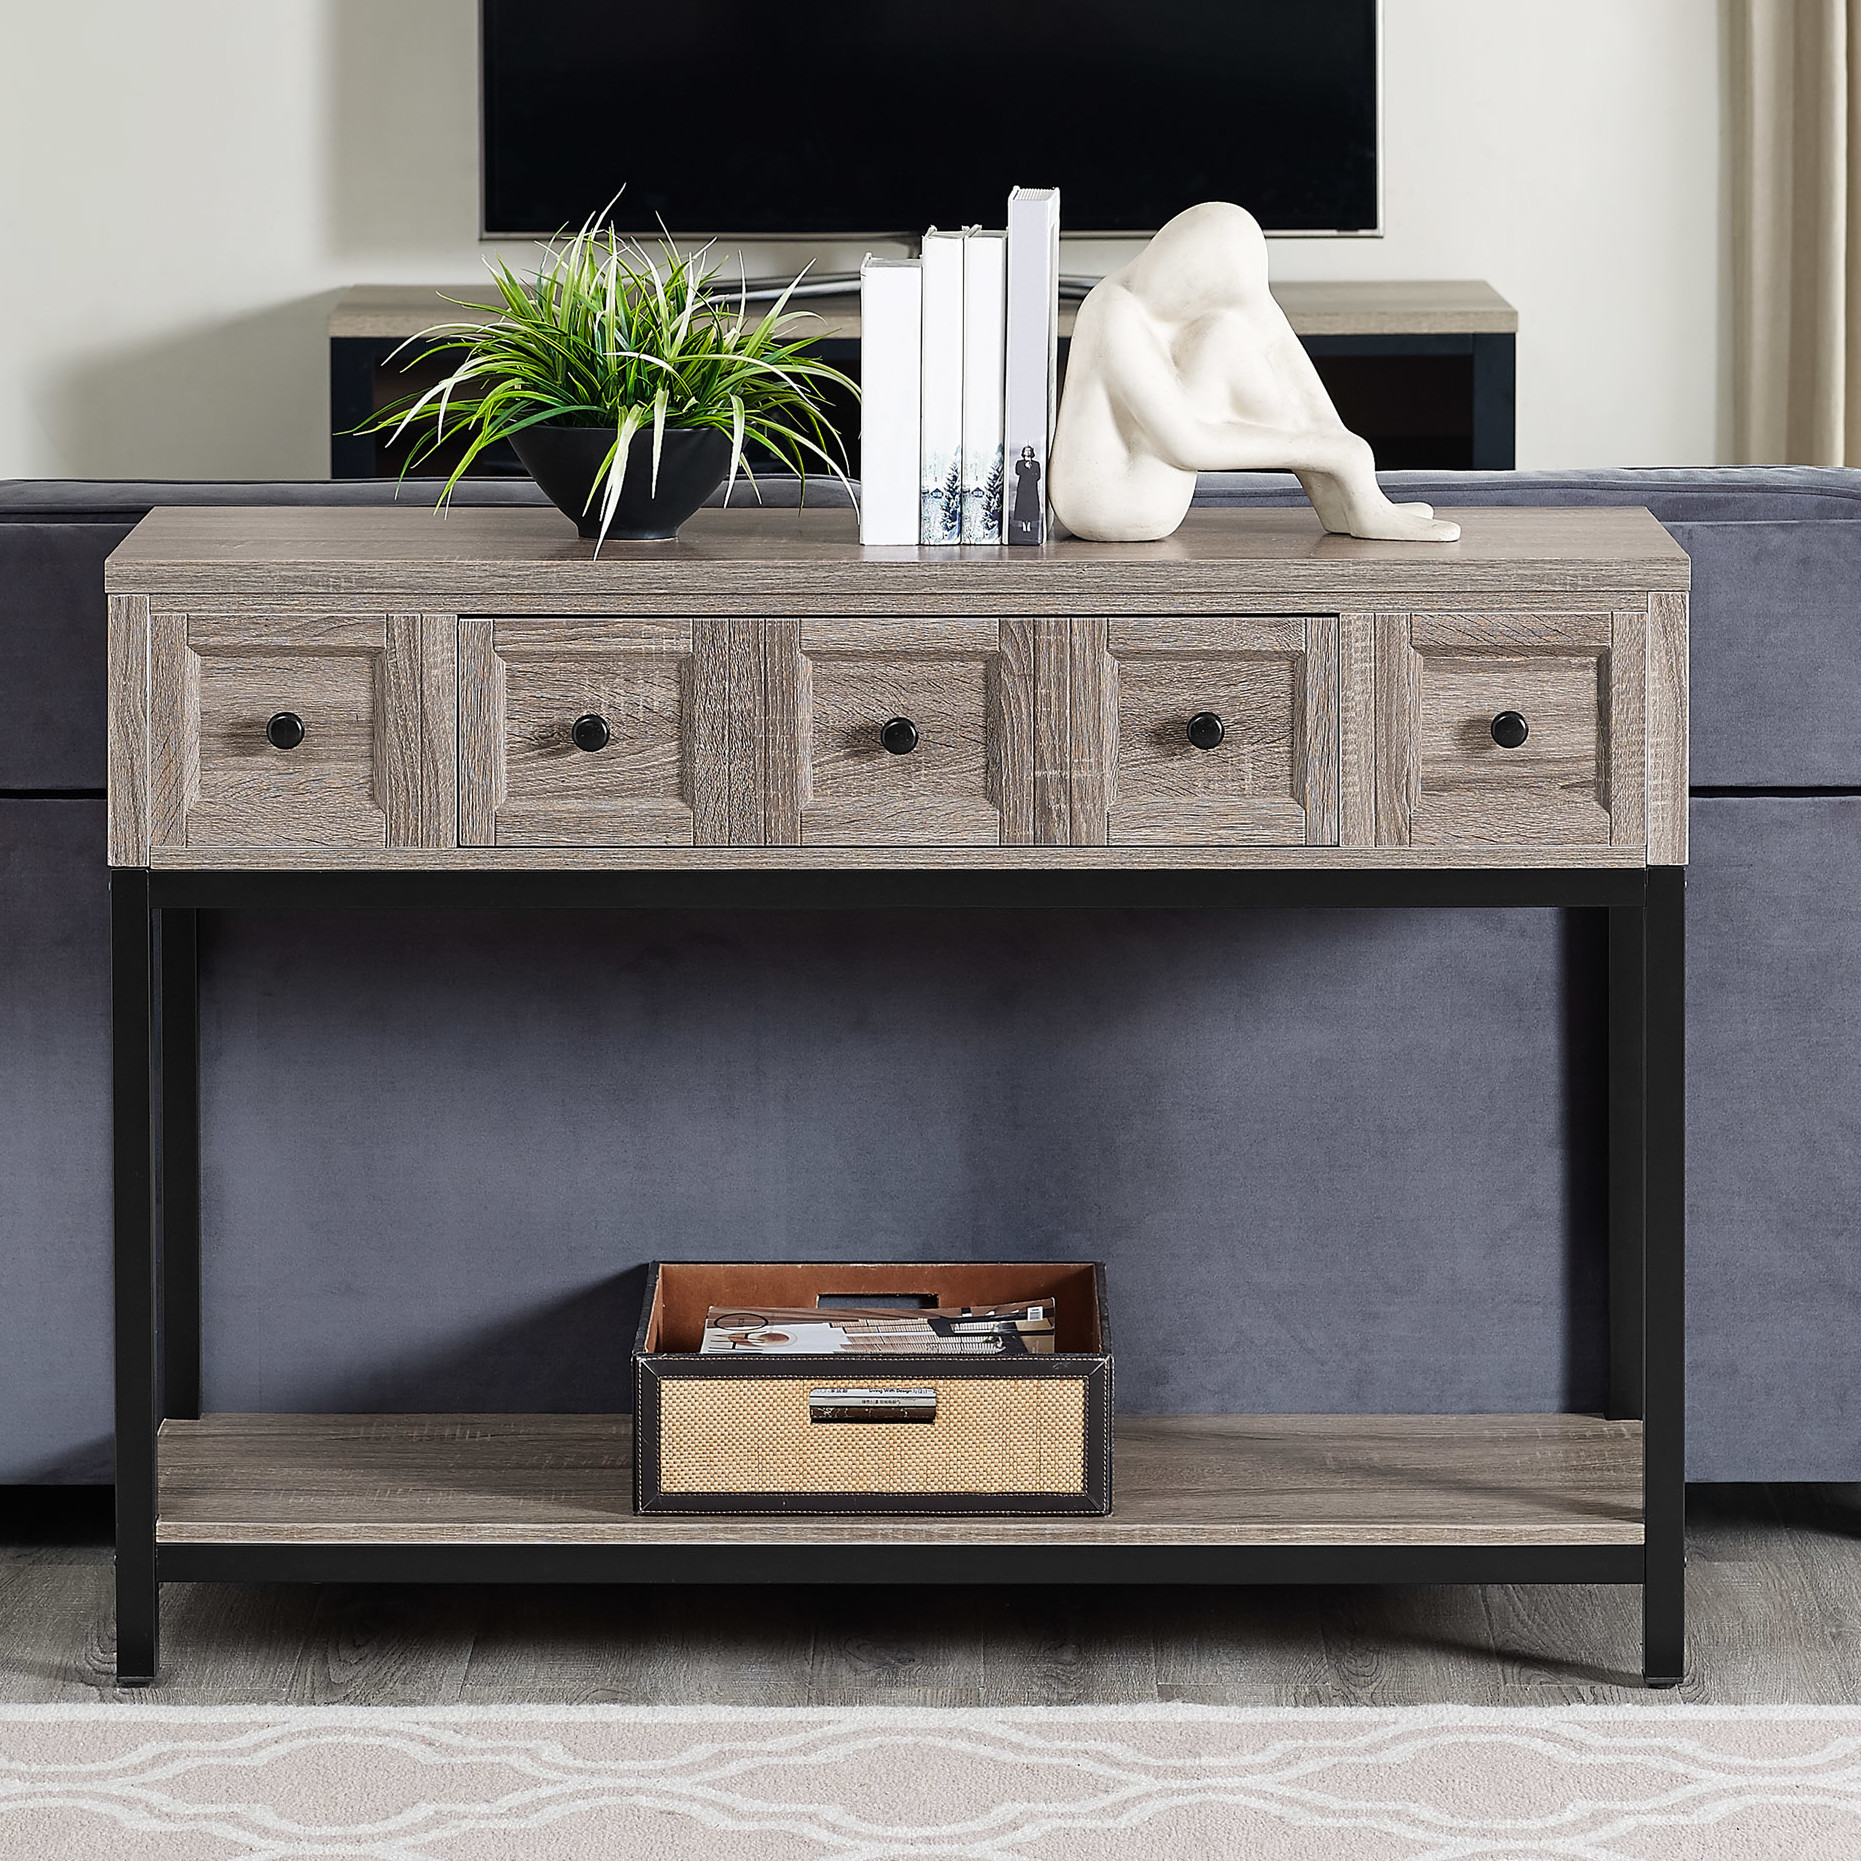 leather storage white decorating end argos contemporary tables glass center farmh style plans furniture side lamp centerpieces for television modern rooms room living ideas